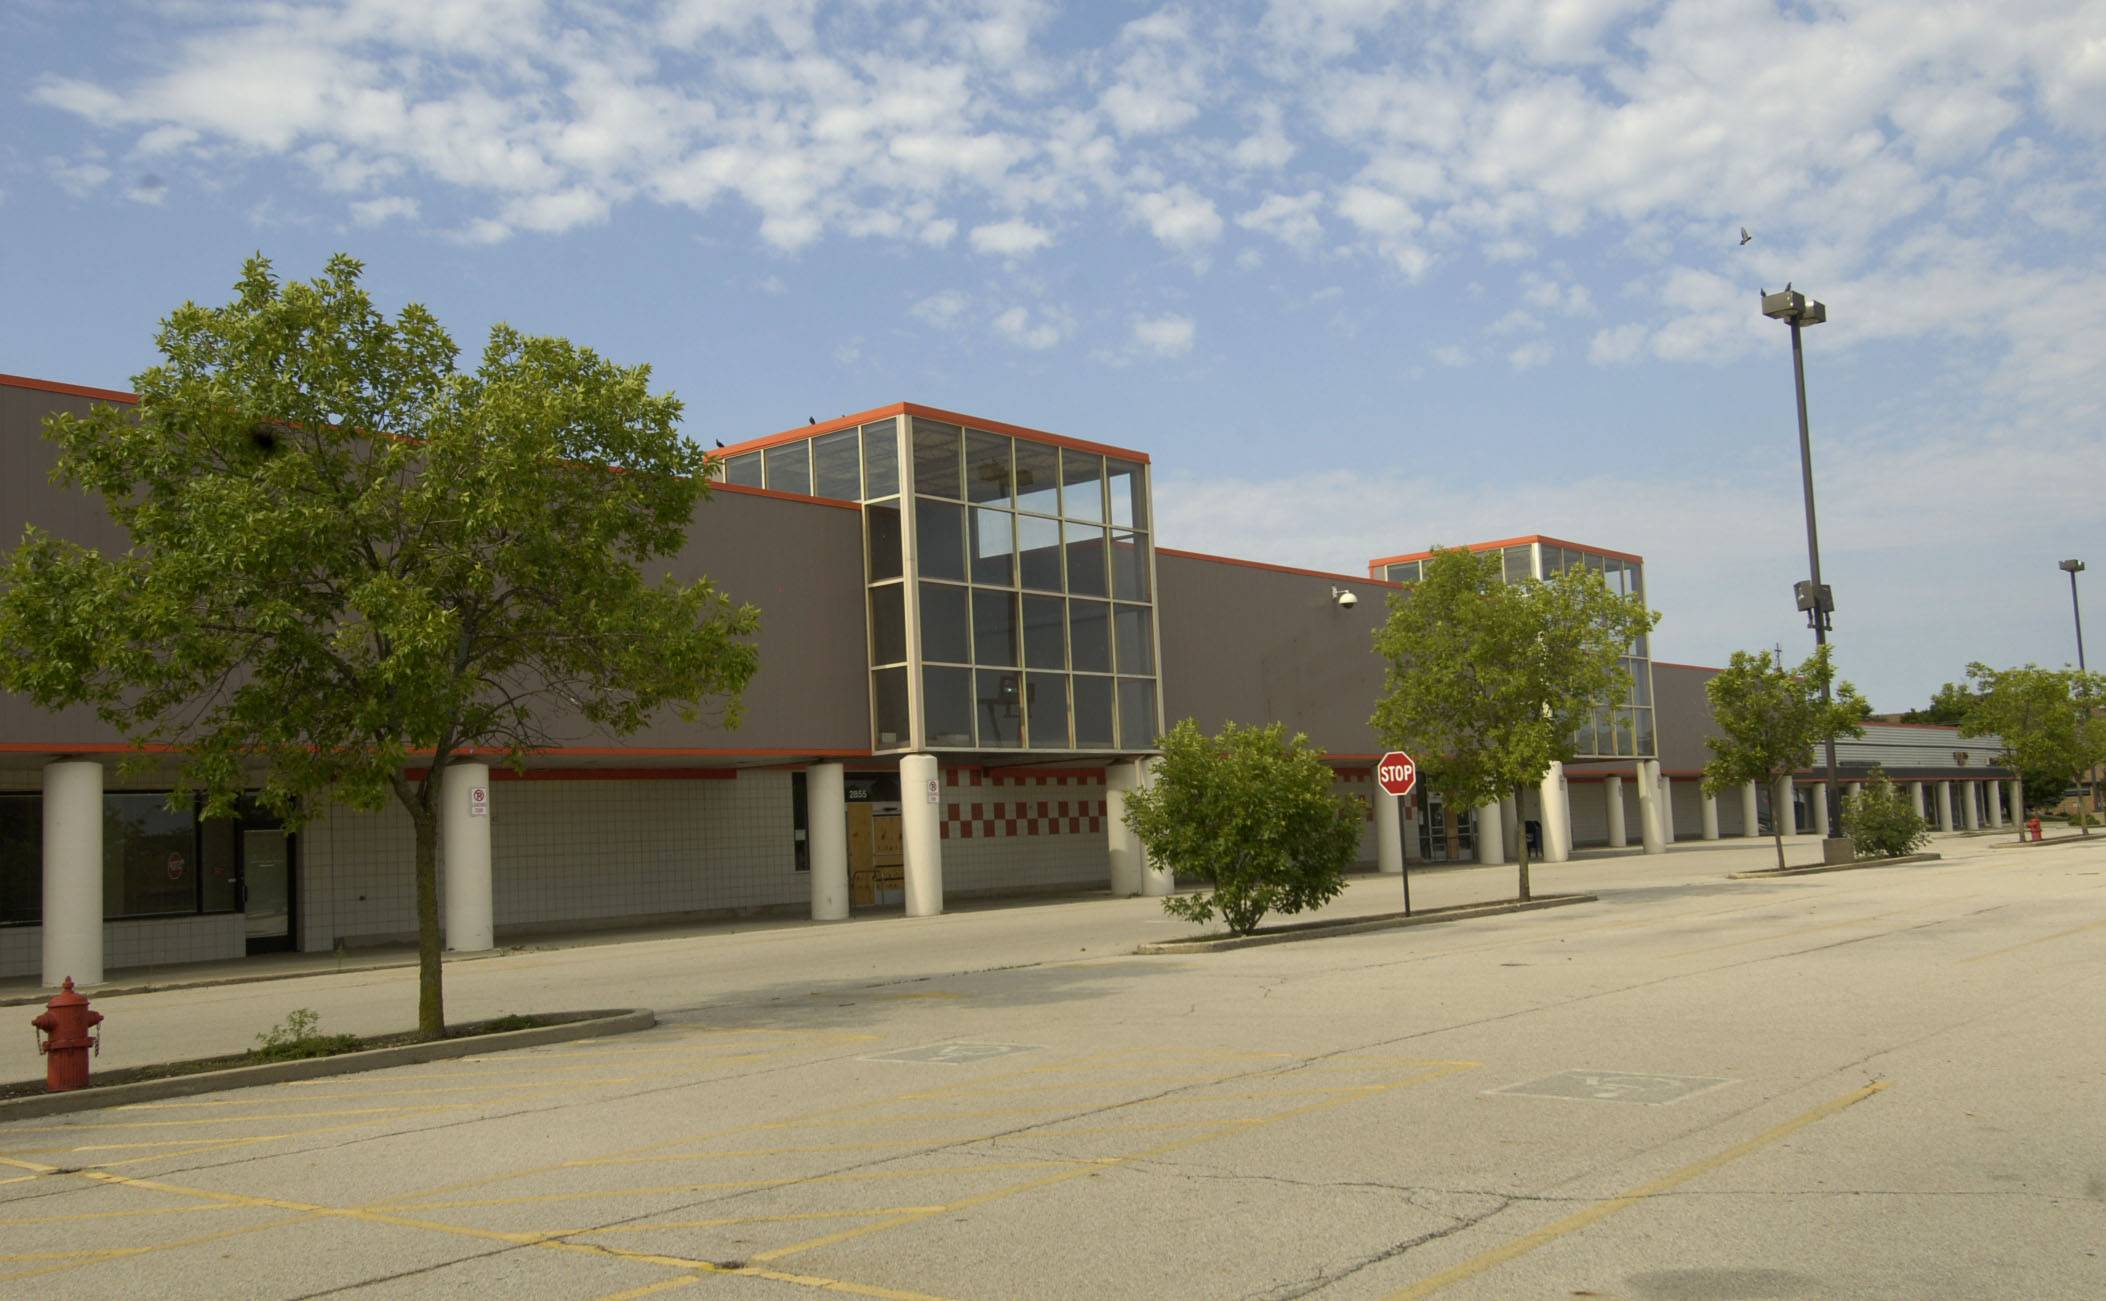 A 4-3 majority of the Rolling Meadows City Council Tuesday shot down the idea of the city even buying the long vacant Dominick's site.